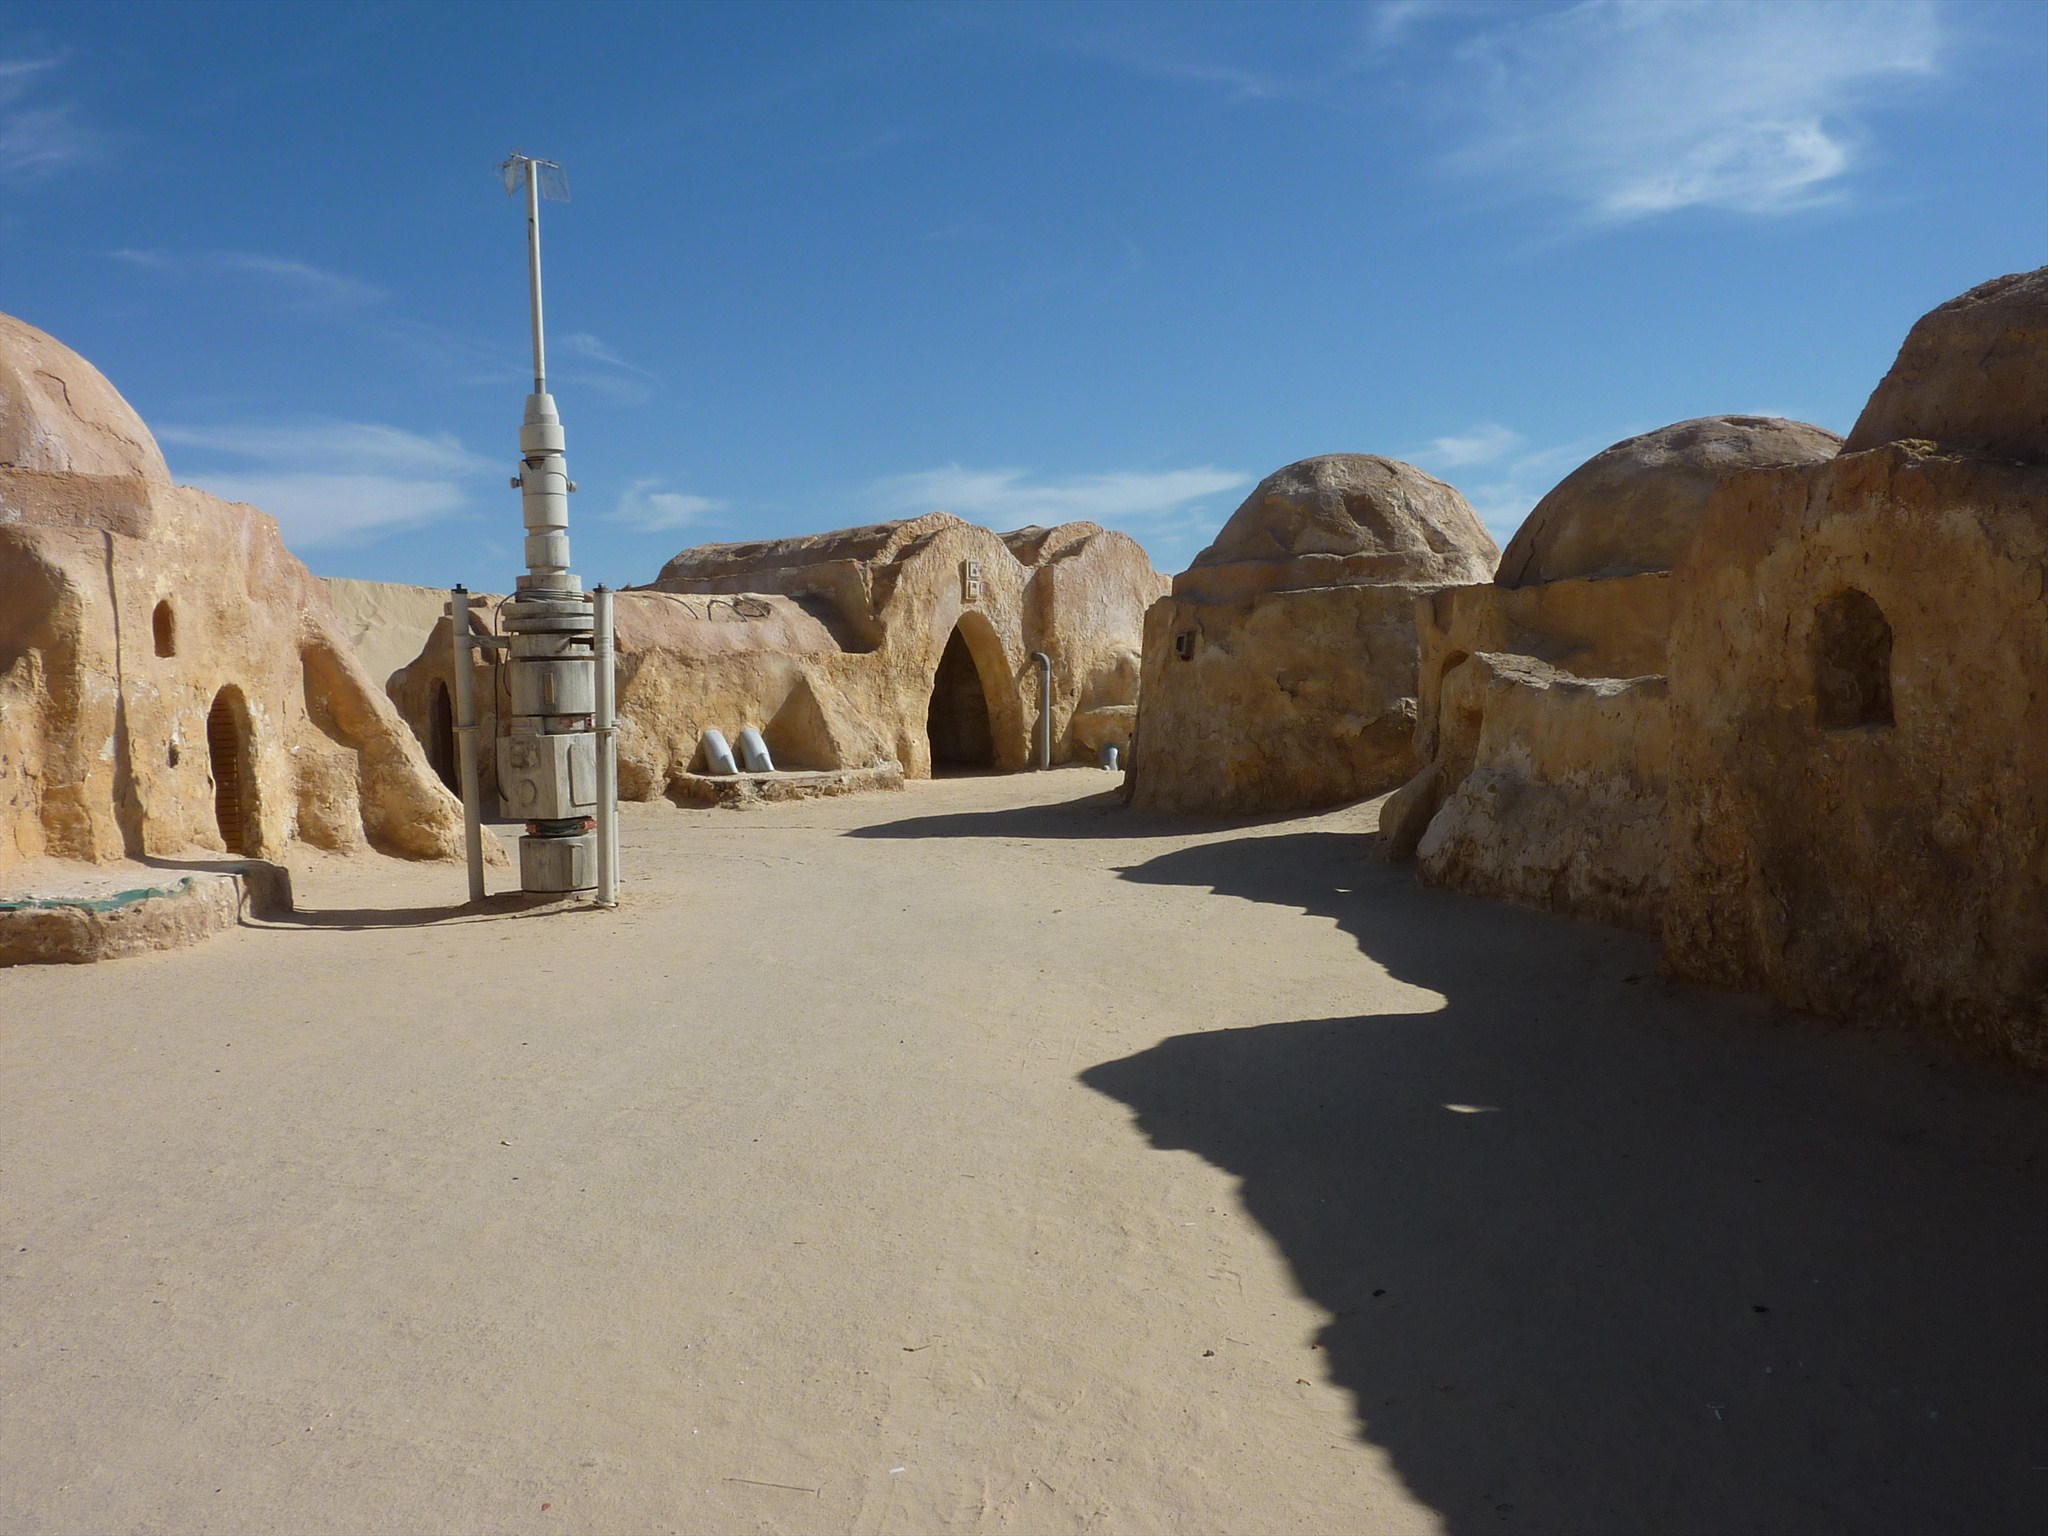 Another view of Mos Eisley. Photo by geocacher Kitou&Laulo44